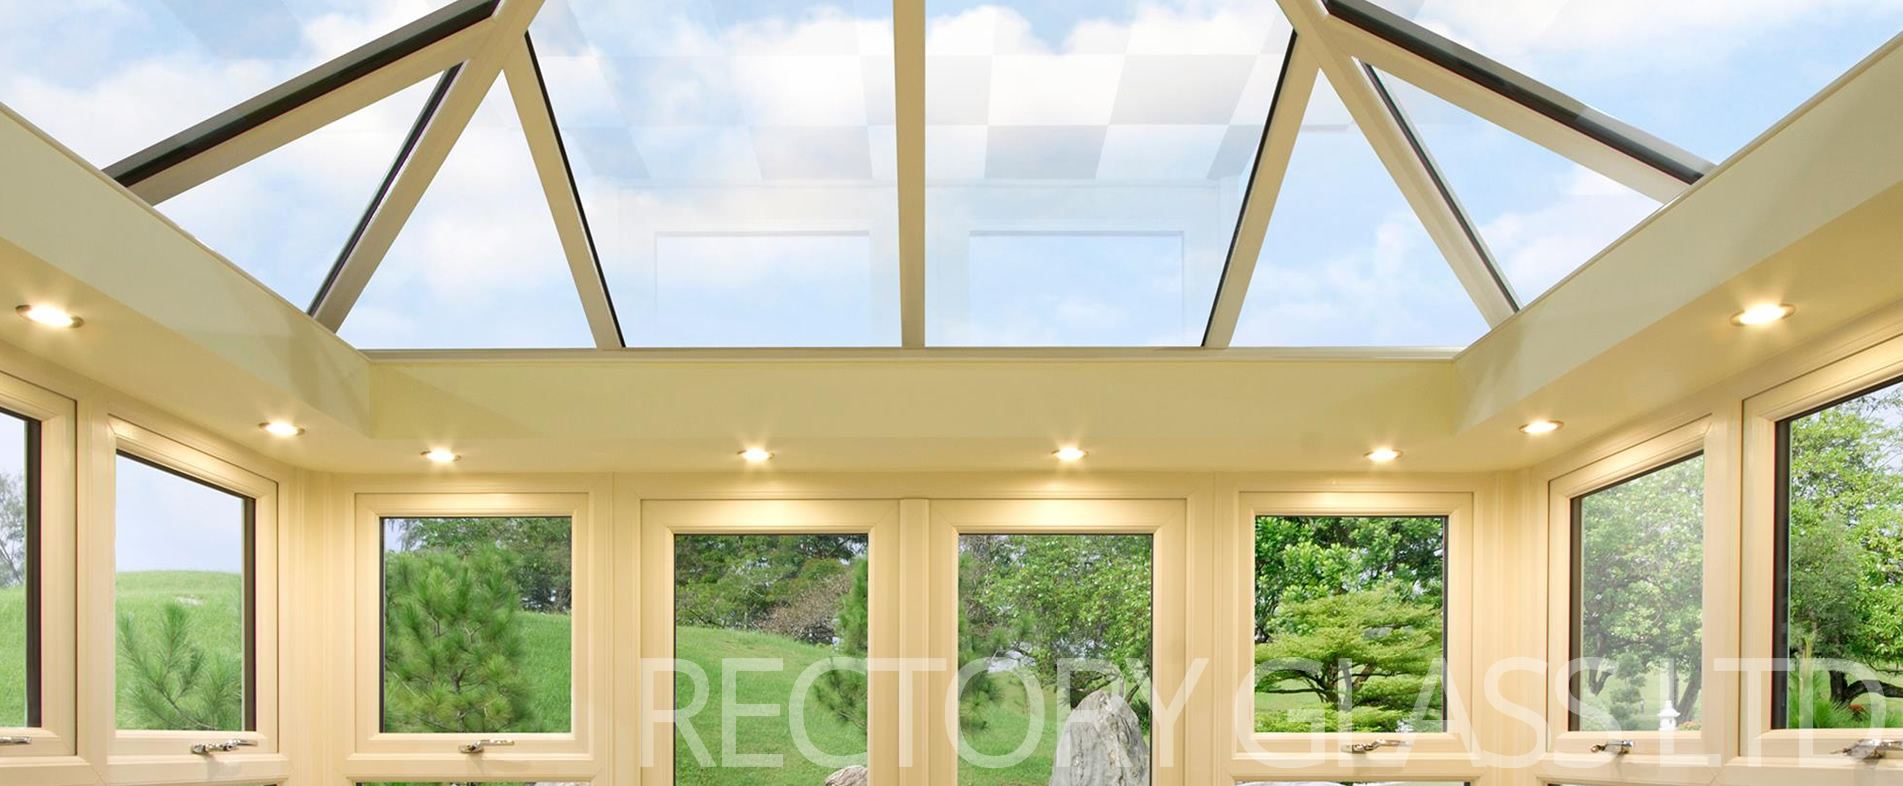 conservatory roof 683410